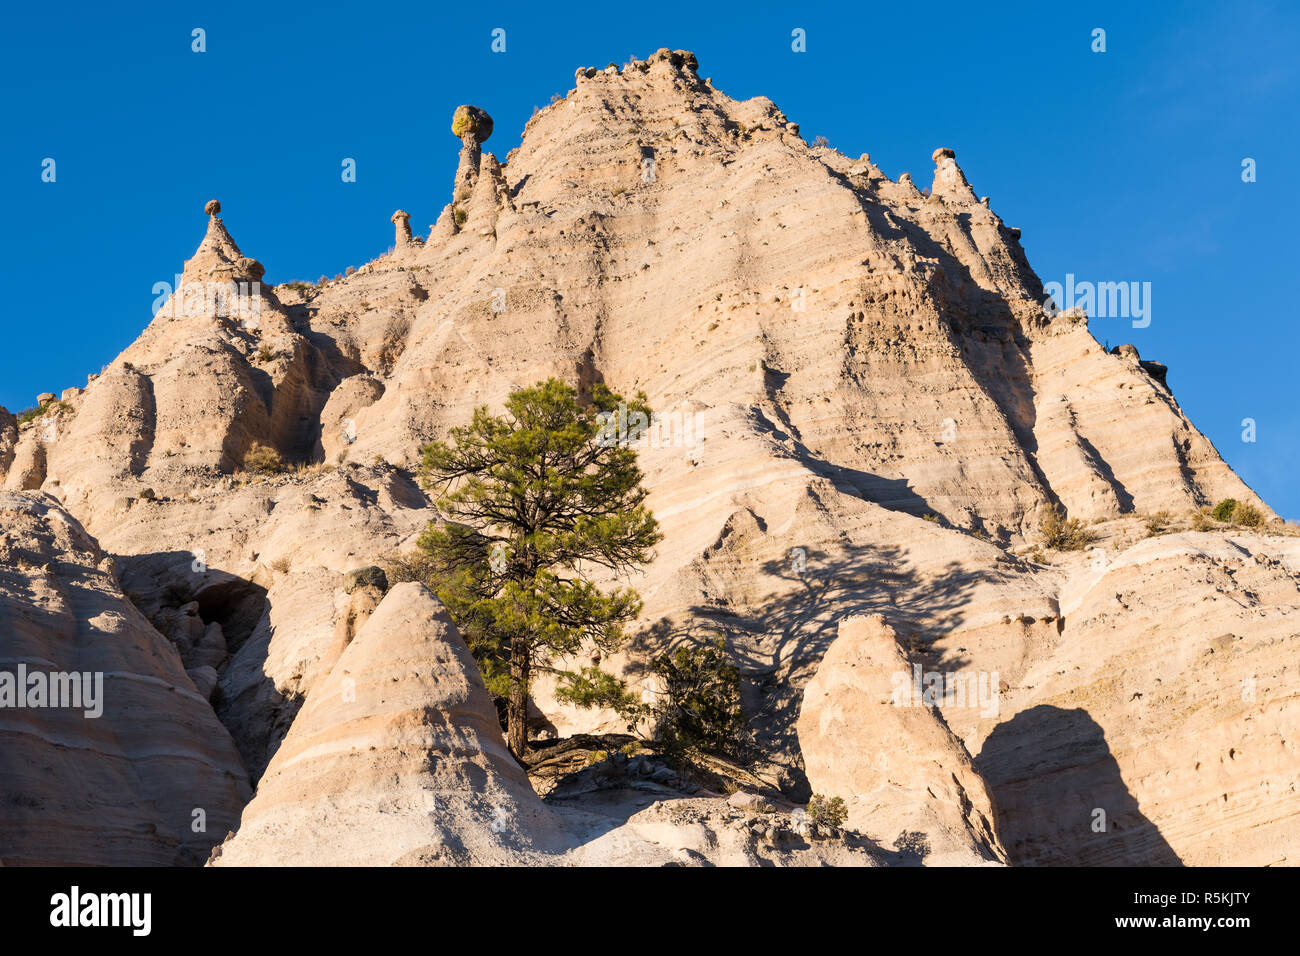 High desert mountain peak with unusual hoodoo rock formations and ponderosa pine at Kasha-Katuwe Tent Rocks National Monument, New Mexico - Stock Image